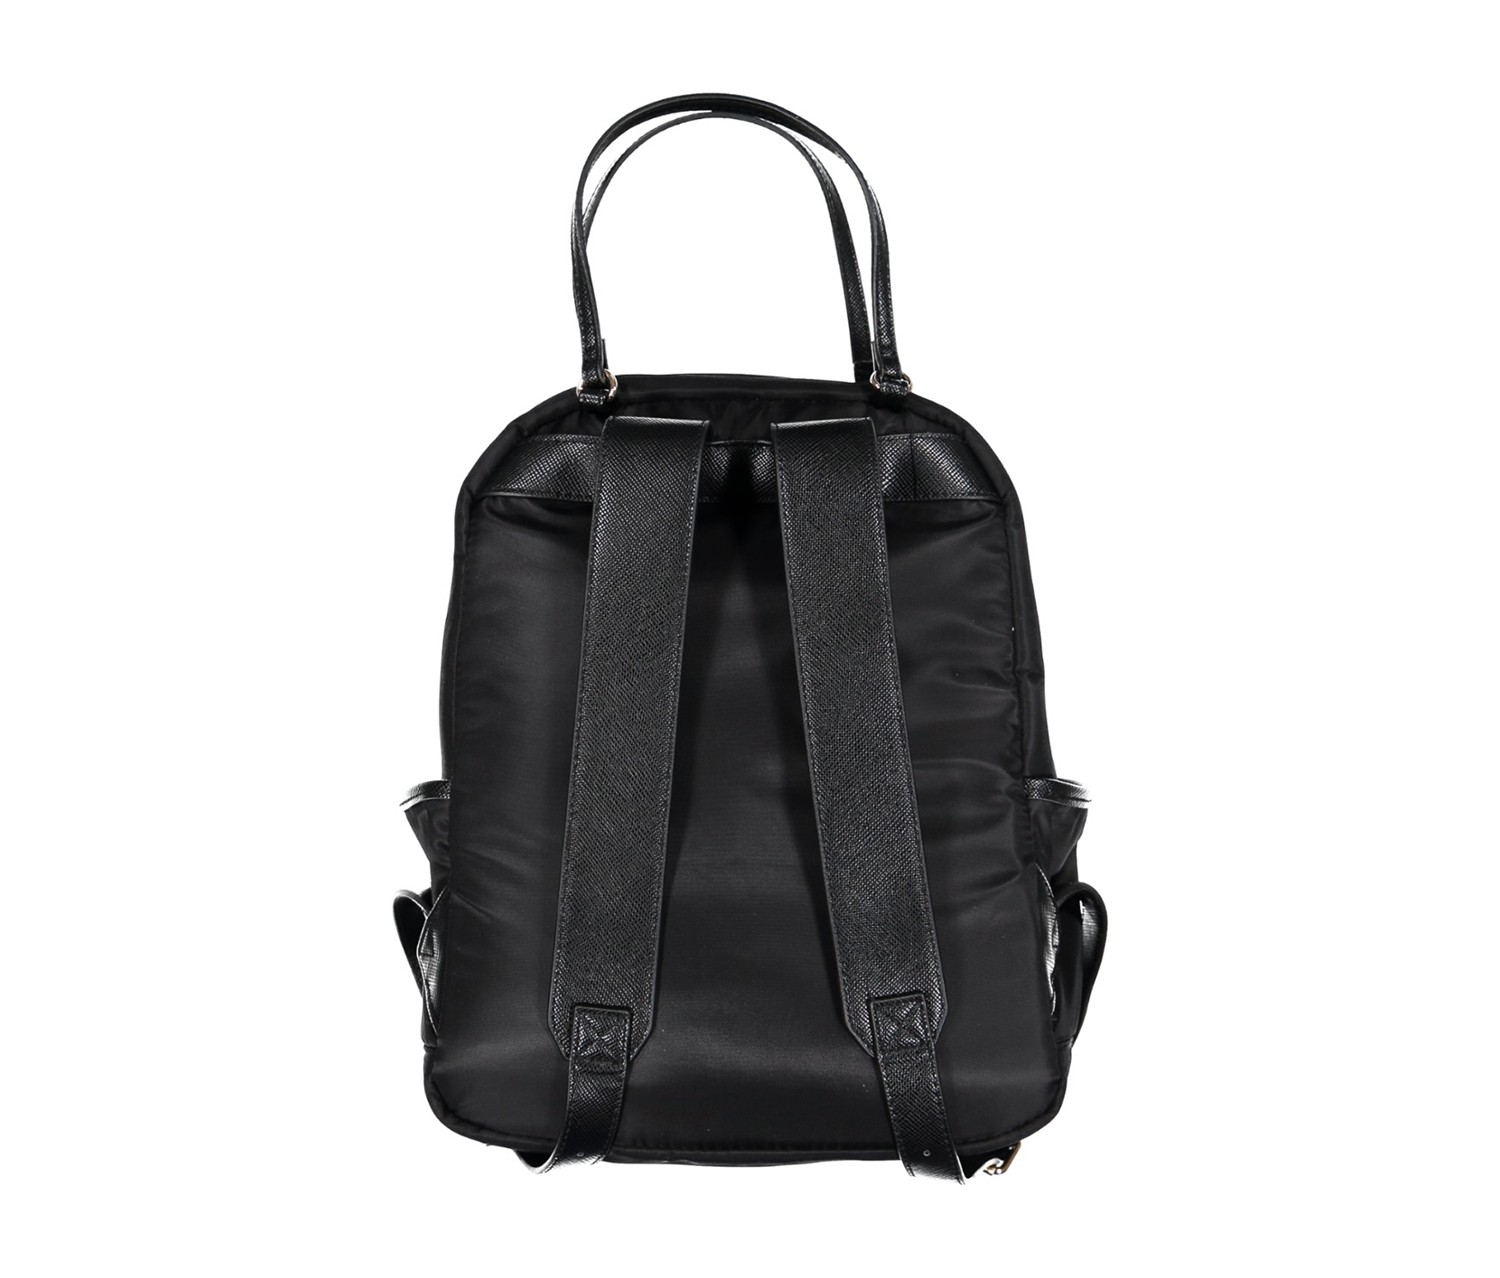 jones new york selita backpack black brands for less. Black Bedroom Furniture Sets. Home Design Ideas